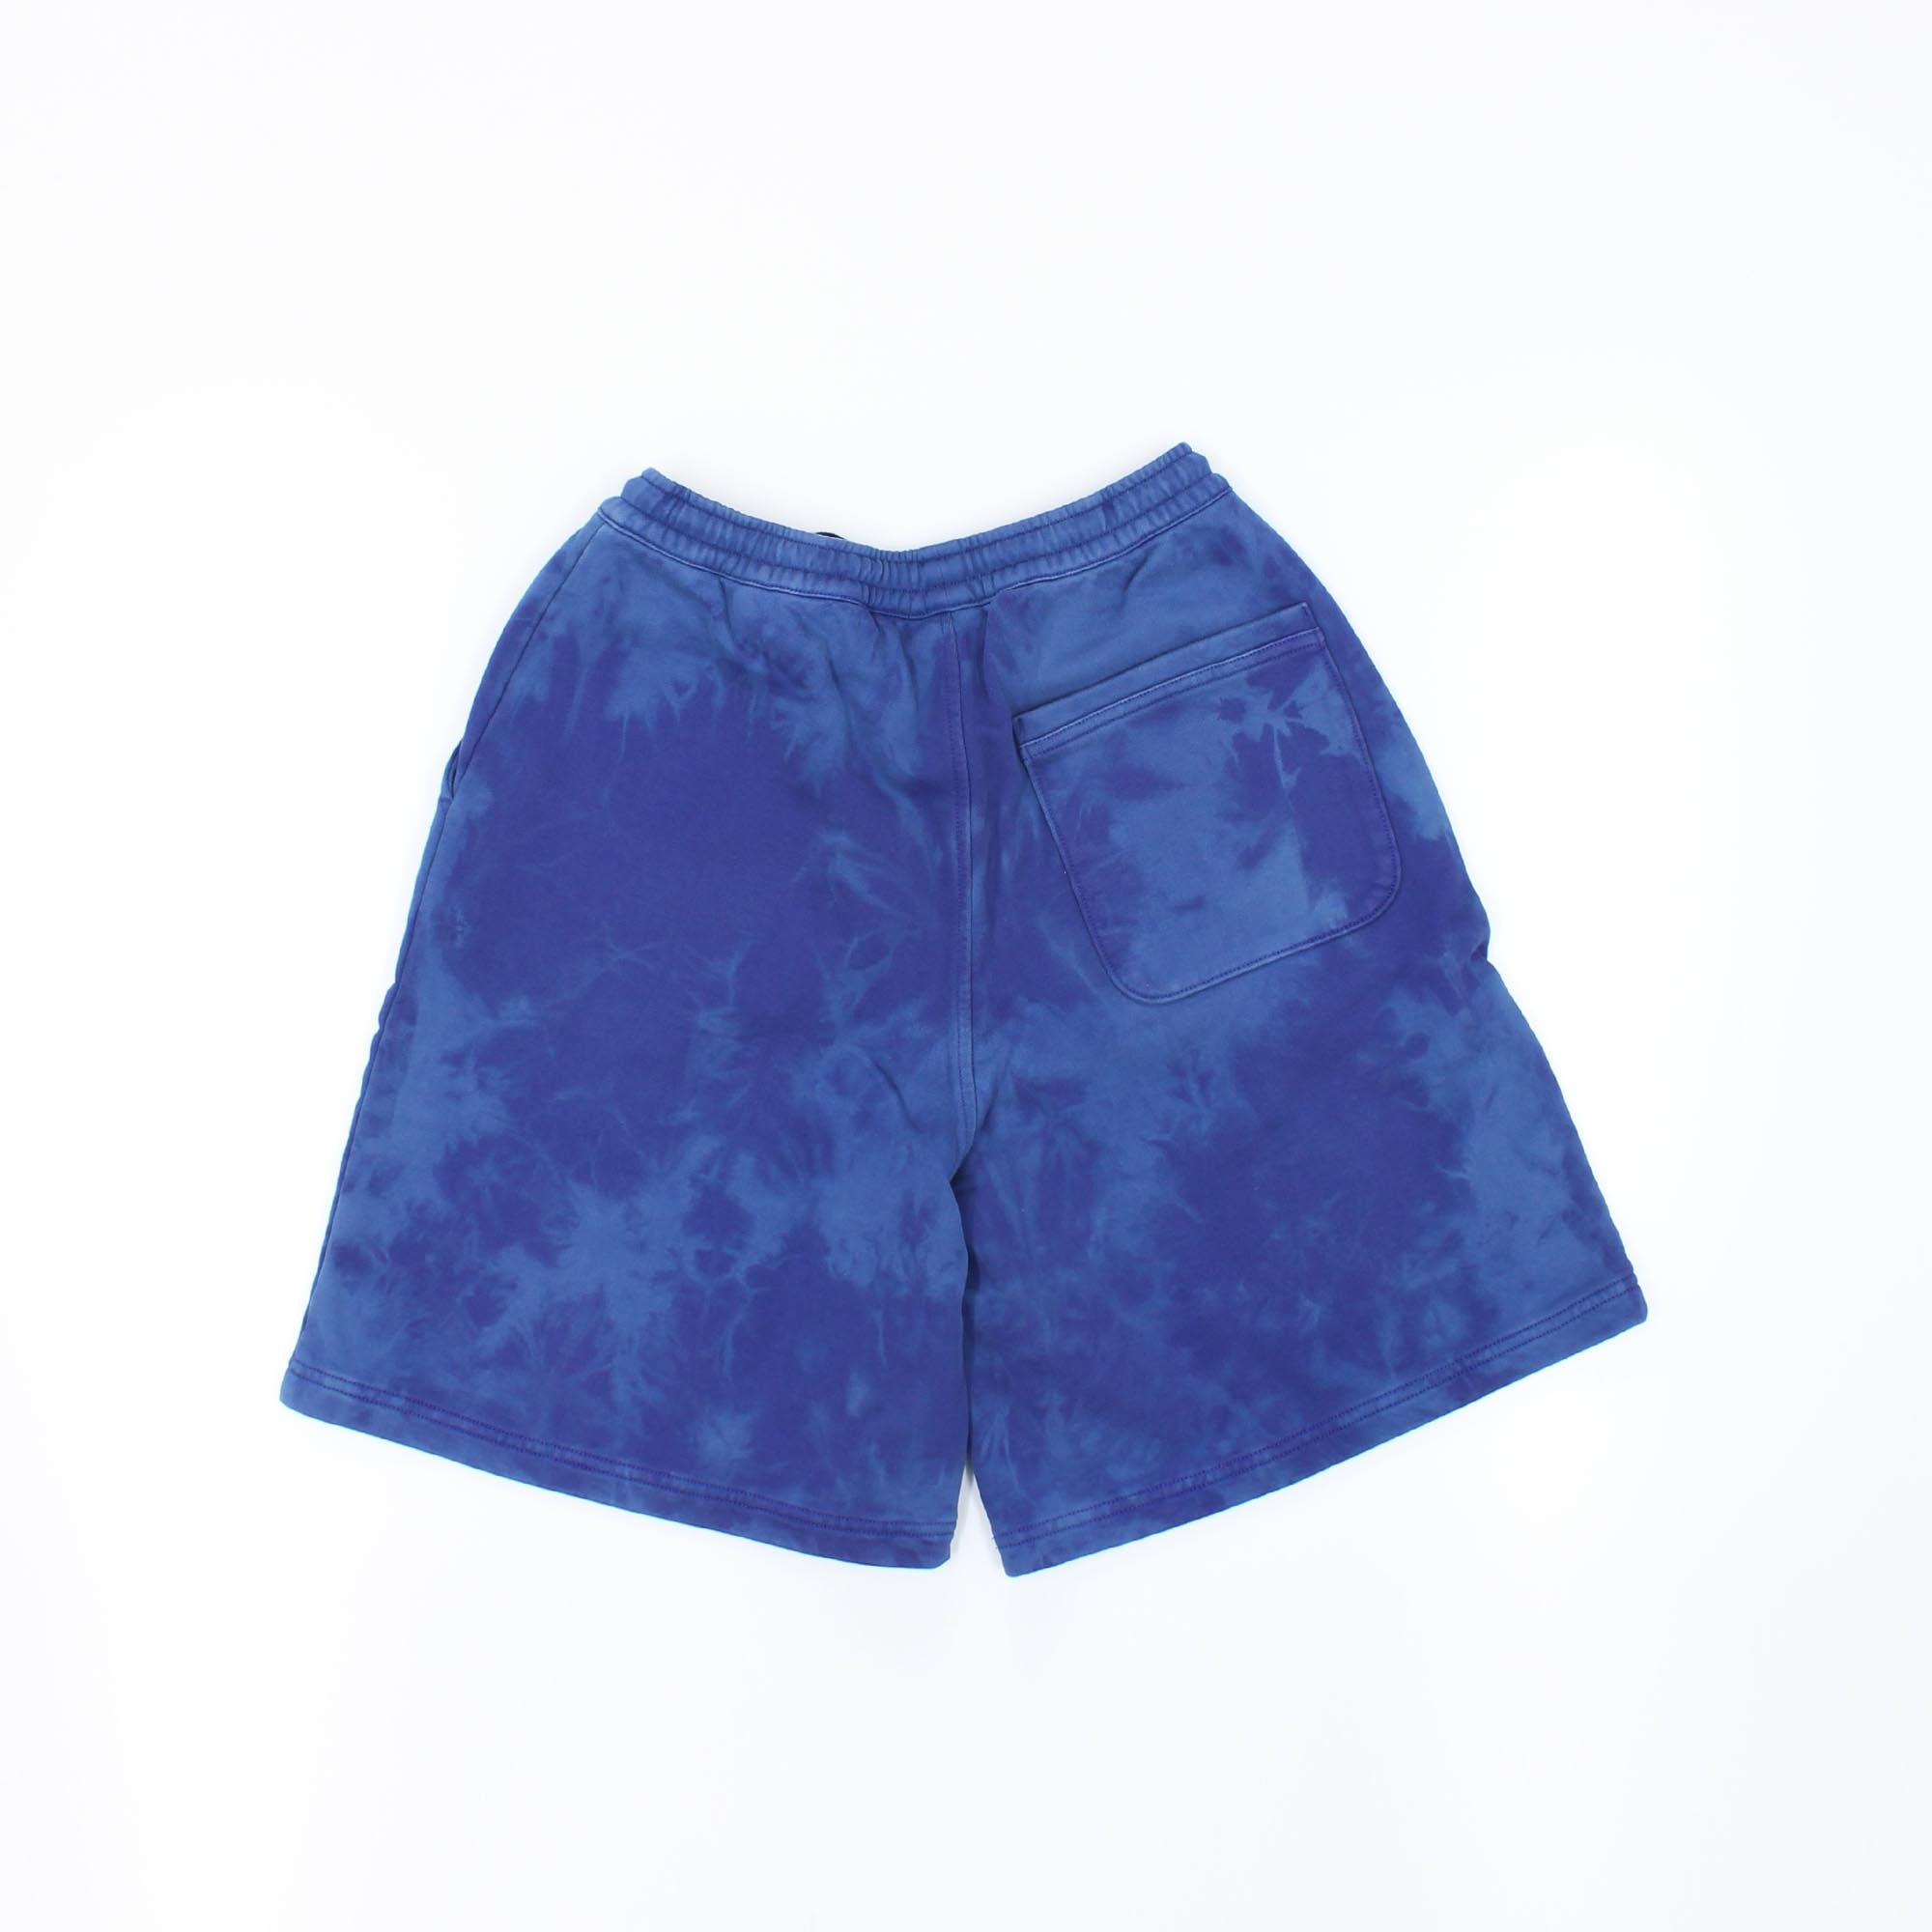 Adidas Originals Tie Dye Shorts Blue